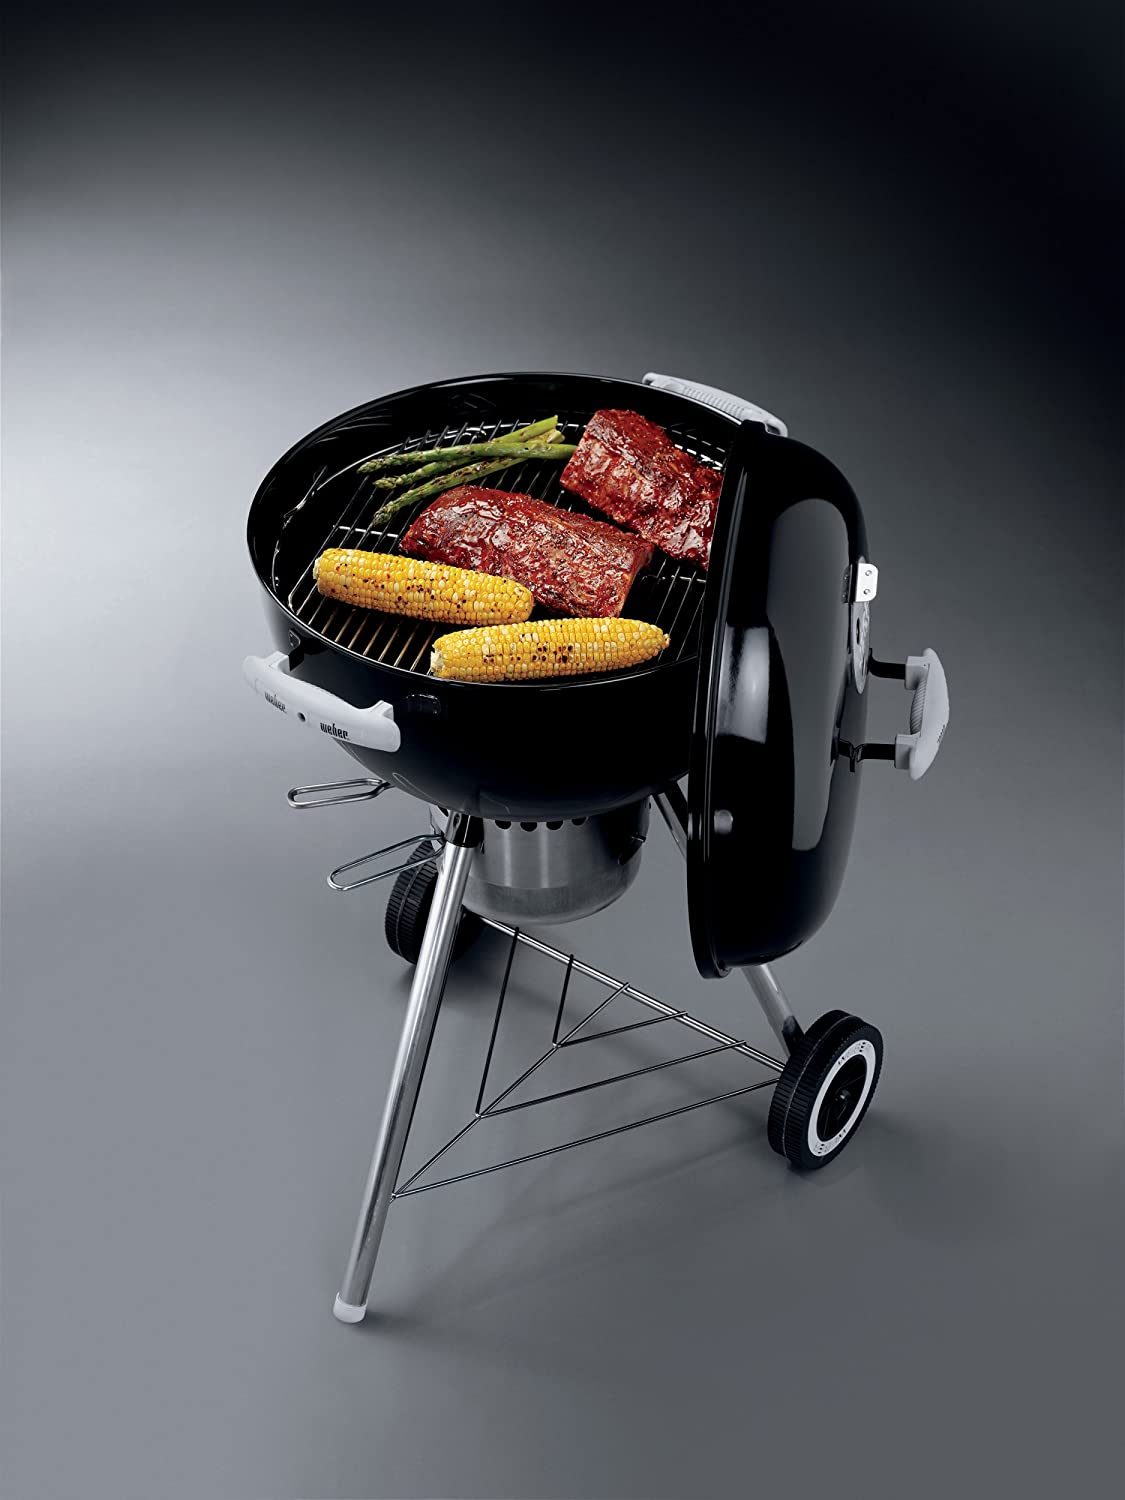 amazon com weber 451001 gold one touch 18 1 2 inch kettle grill